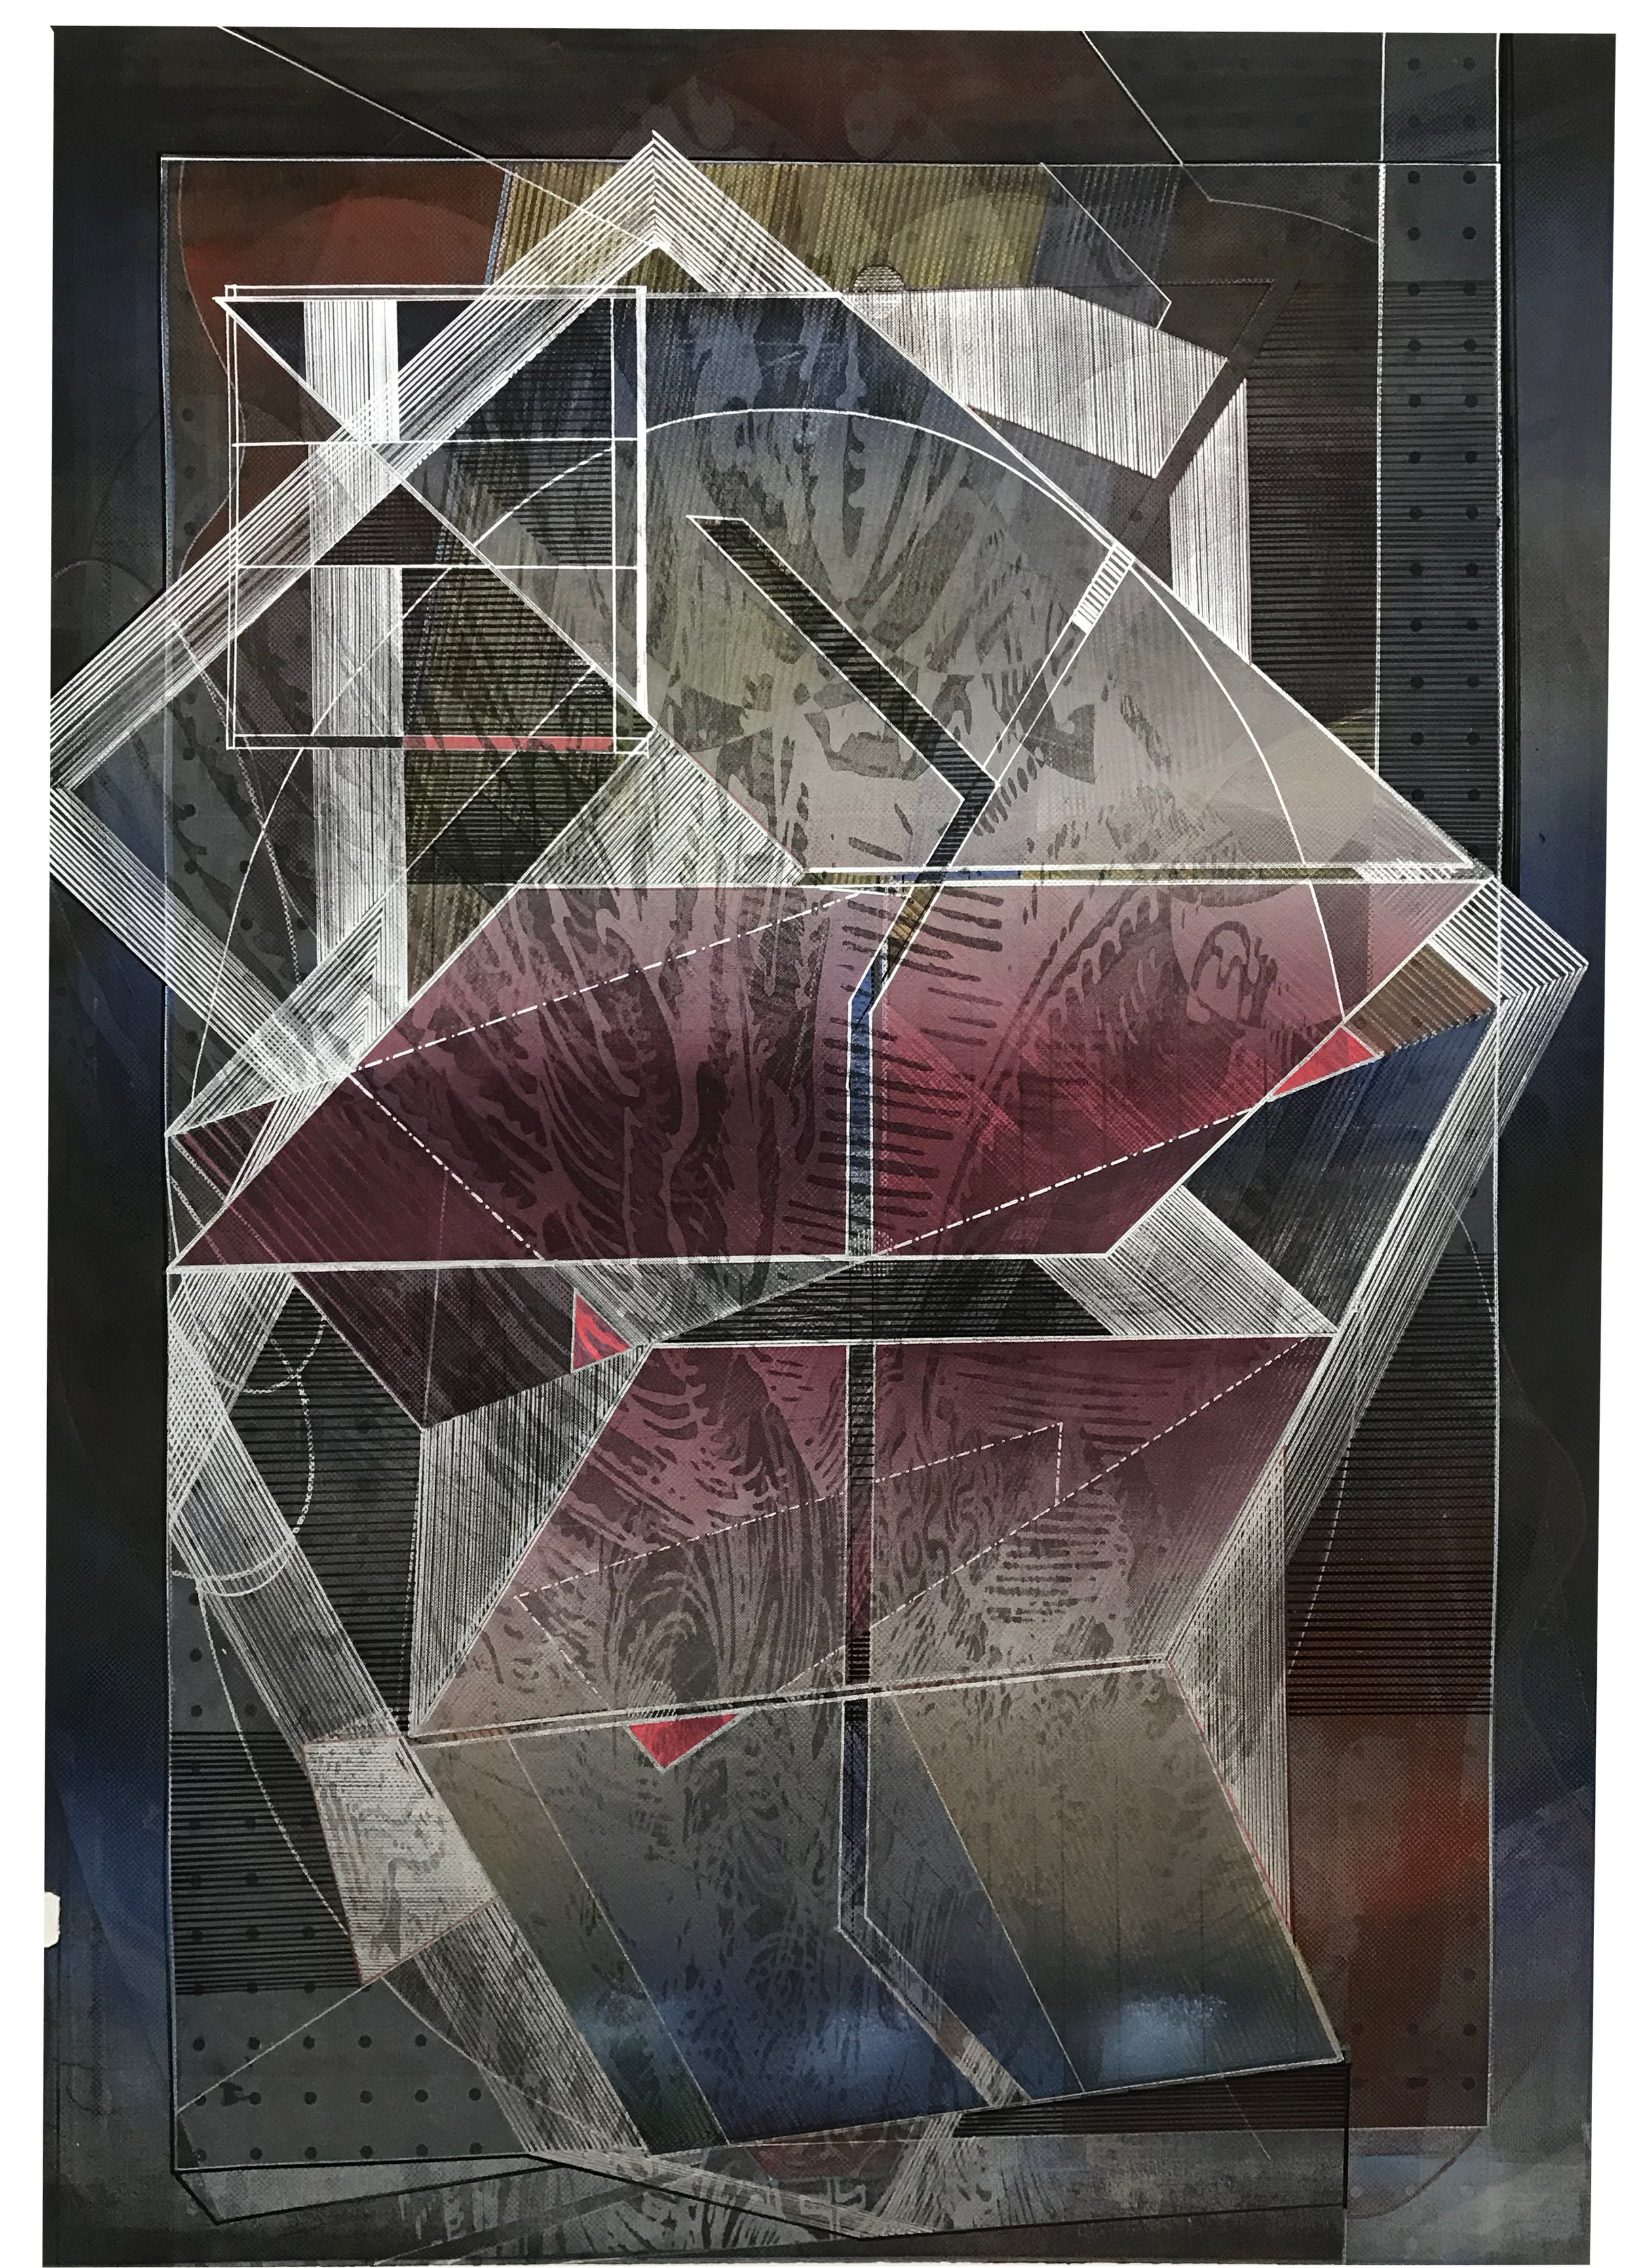 Inertia I by Miguel Rivera, 2019 mixed media on paper, 40x28 inches